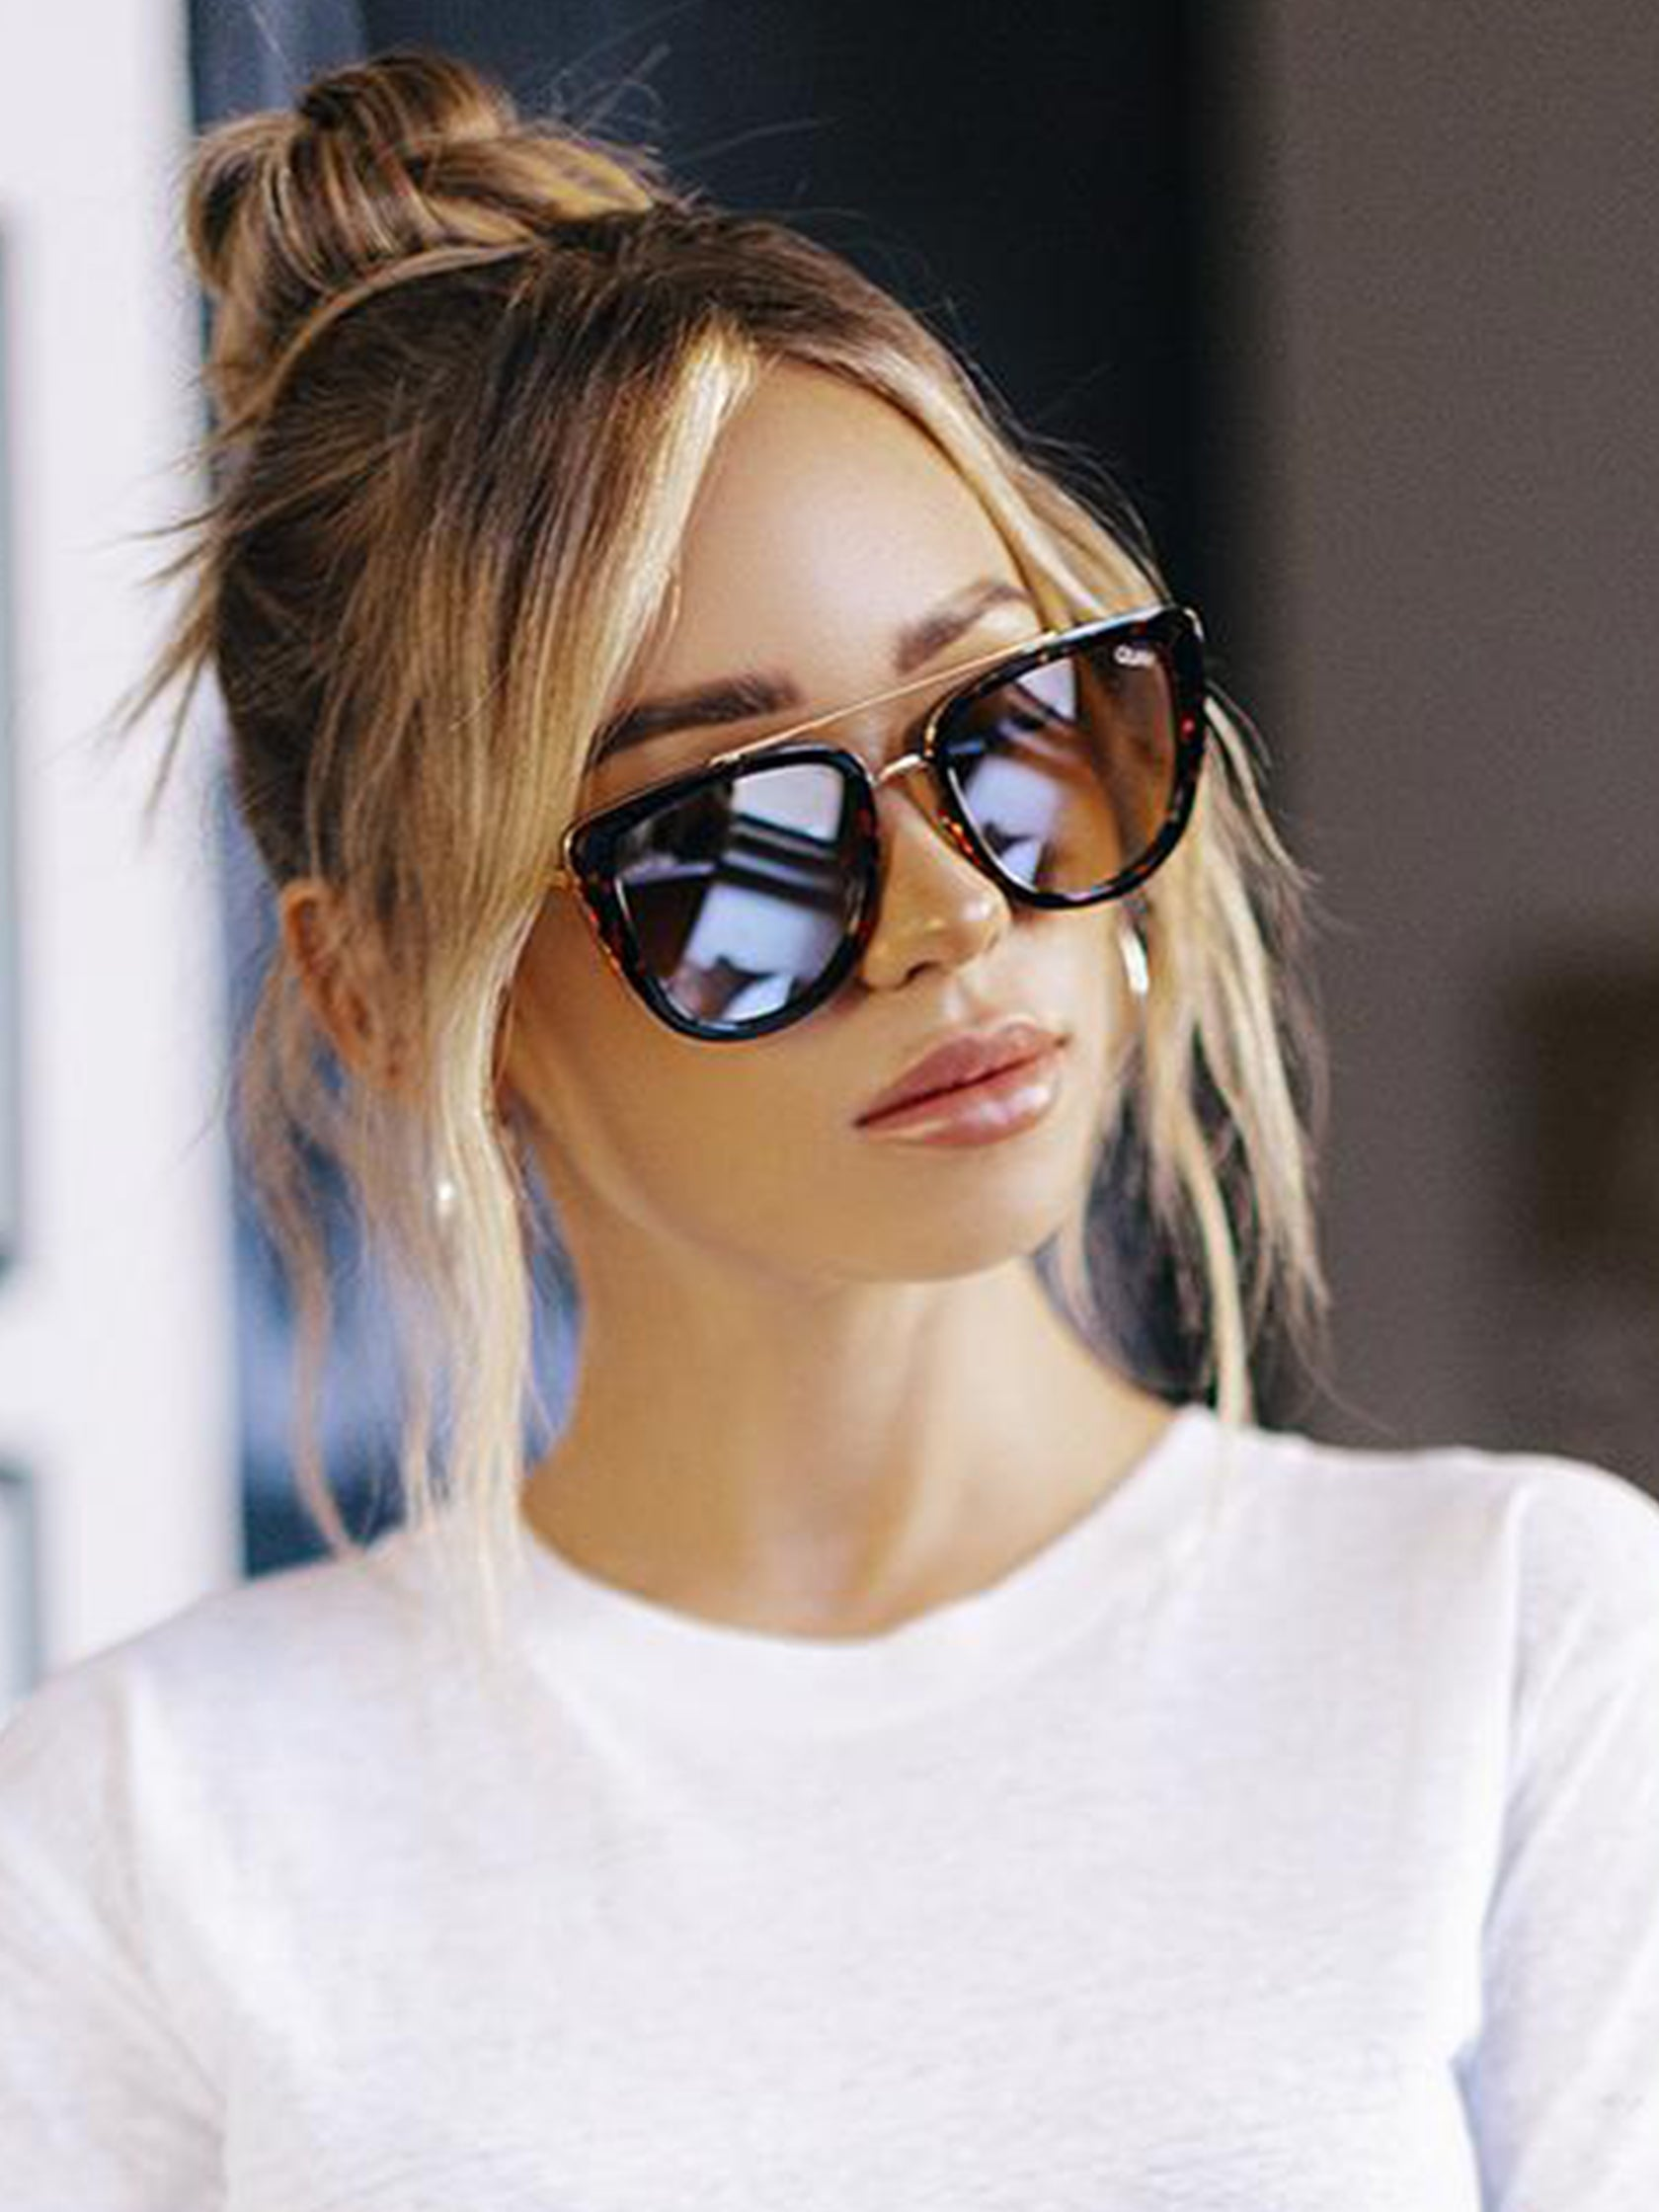 Women wearing a sunglasses rental from Quay Australia called French Kiss Sunglasses